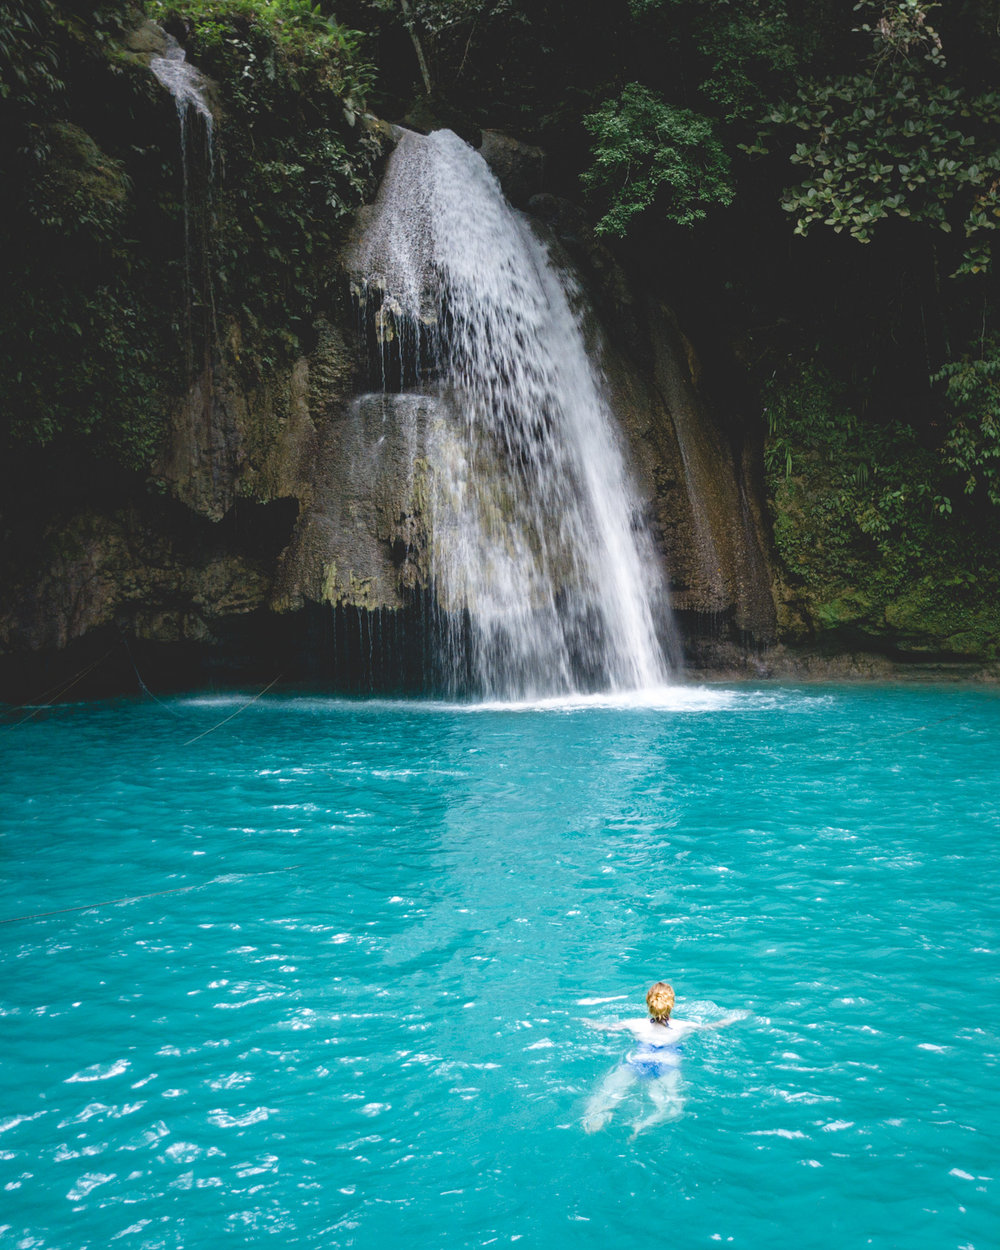 One of the best swimming spots in Cebu - the lower level of Kawasan Falls